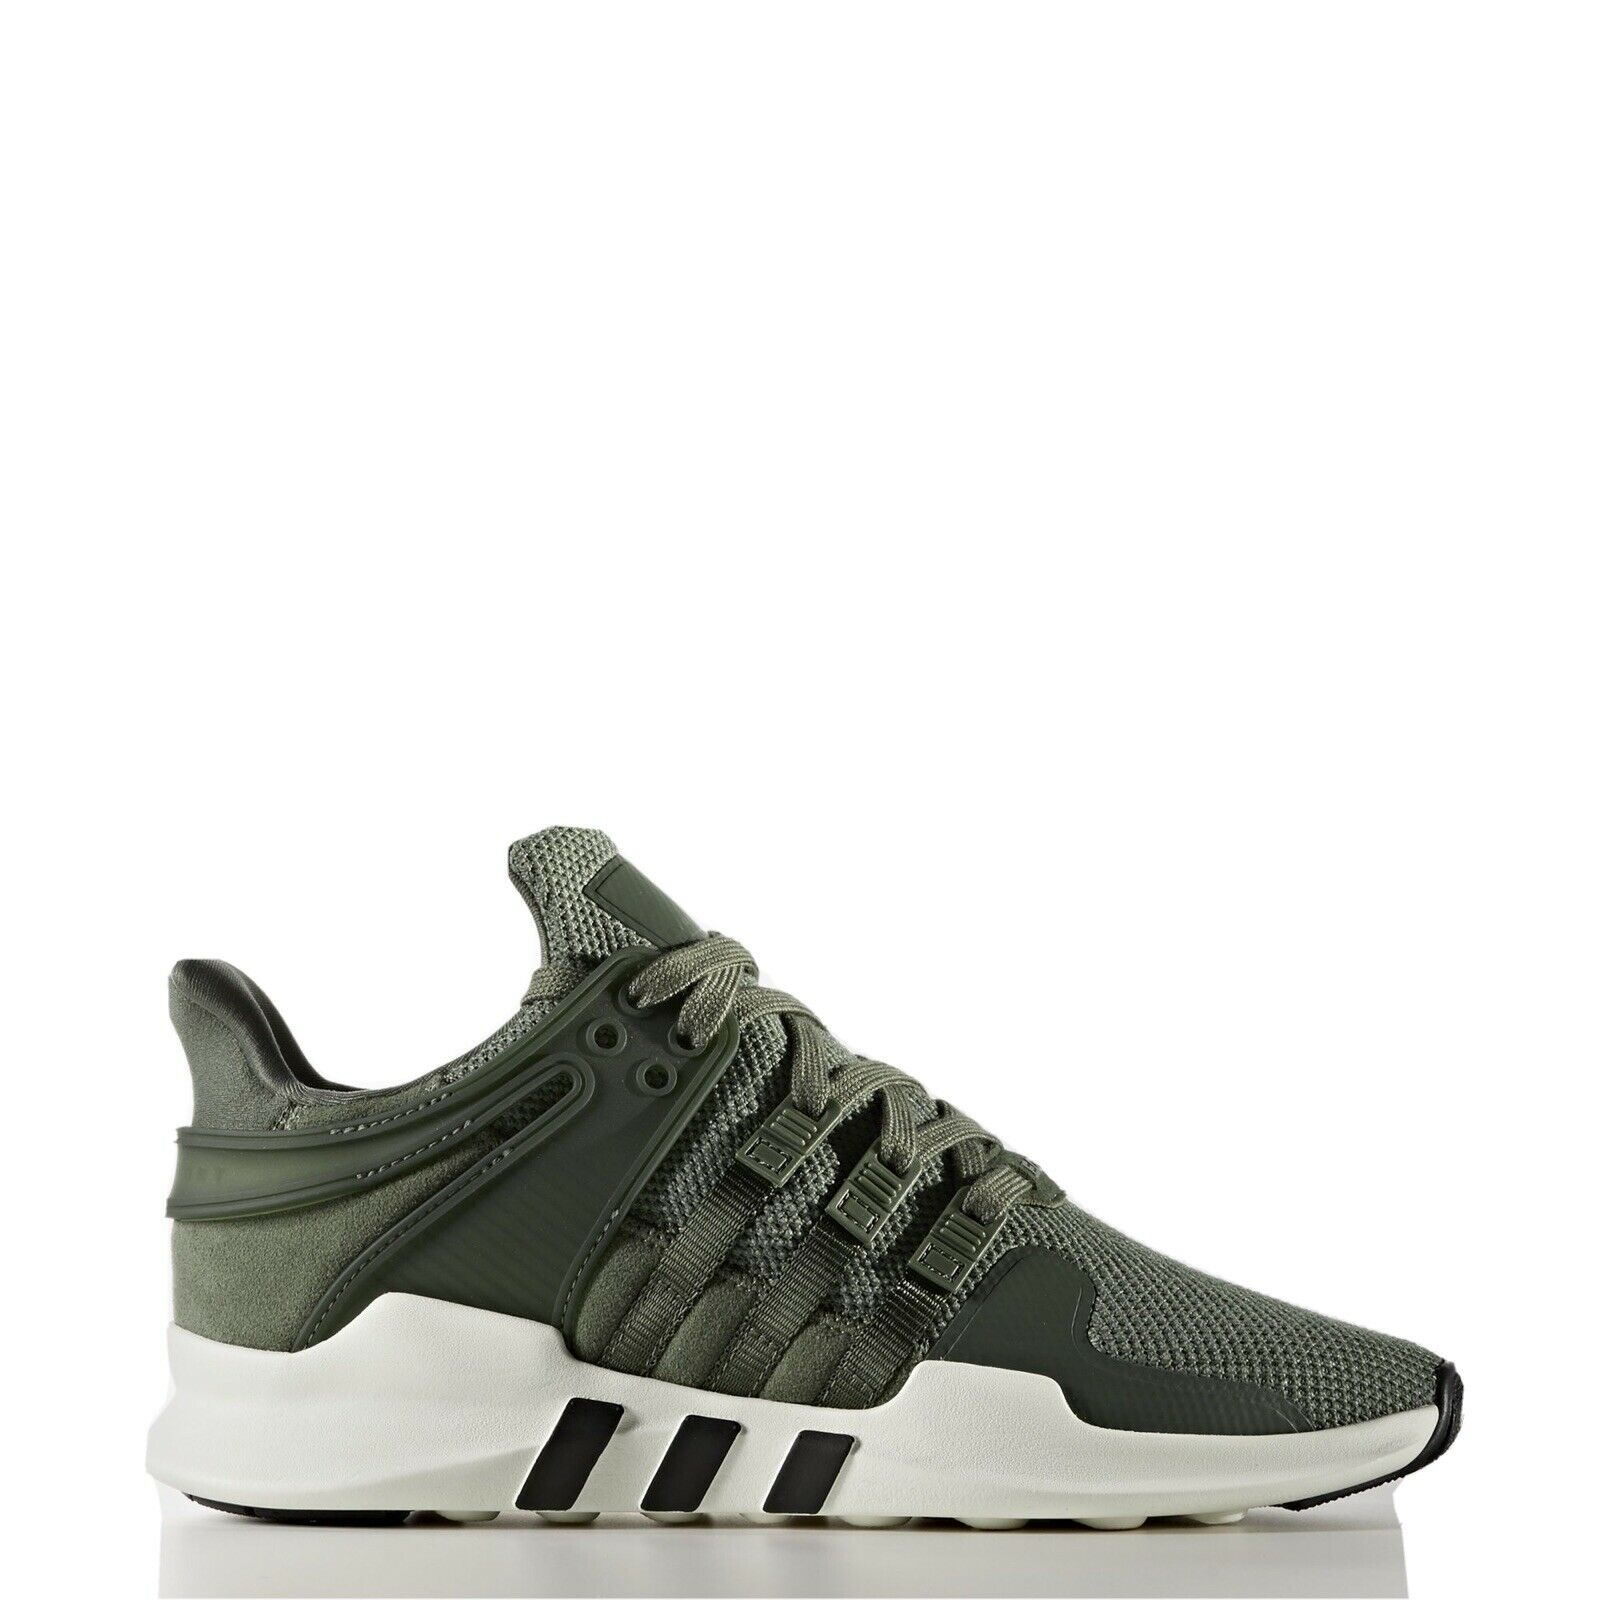 adidas EQT Support ADV W Shoes SNEAKERS